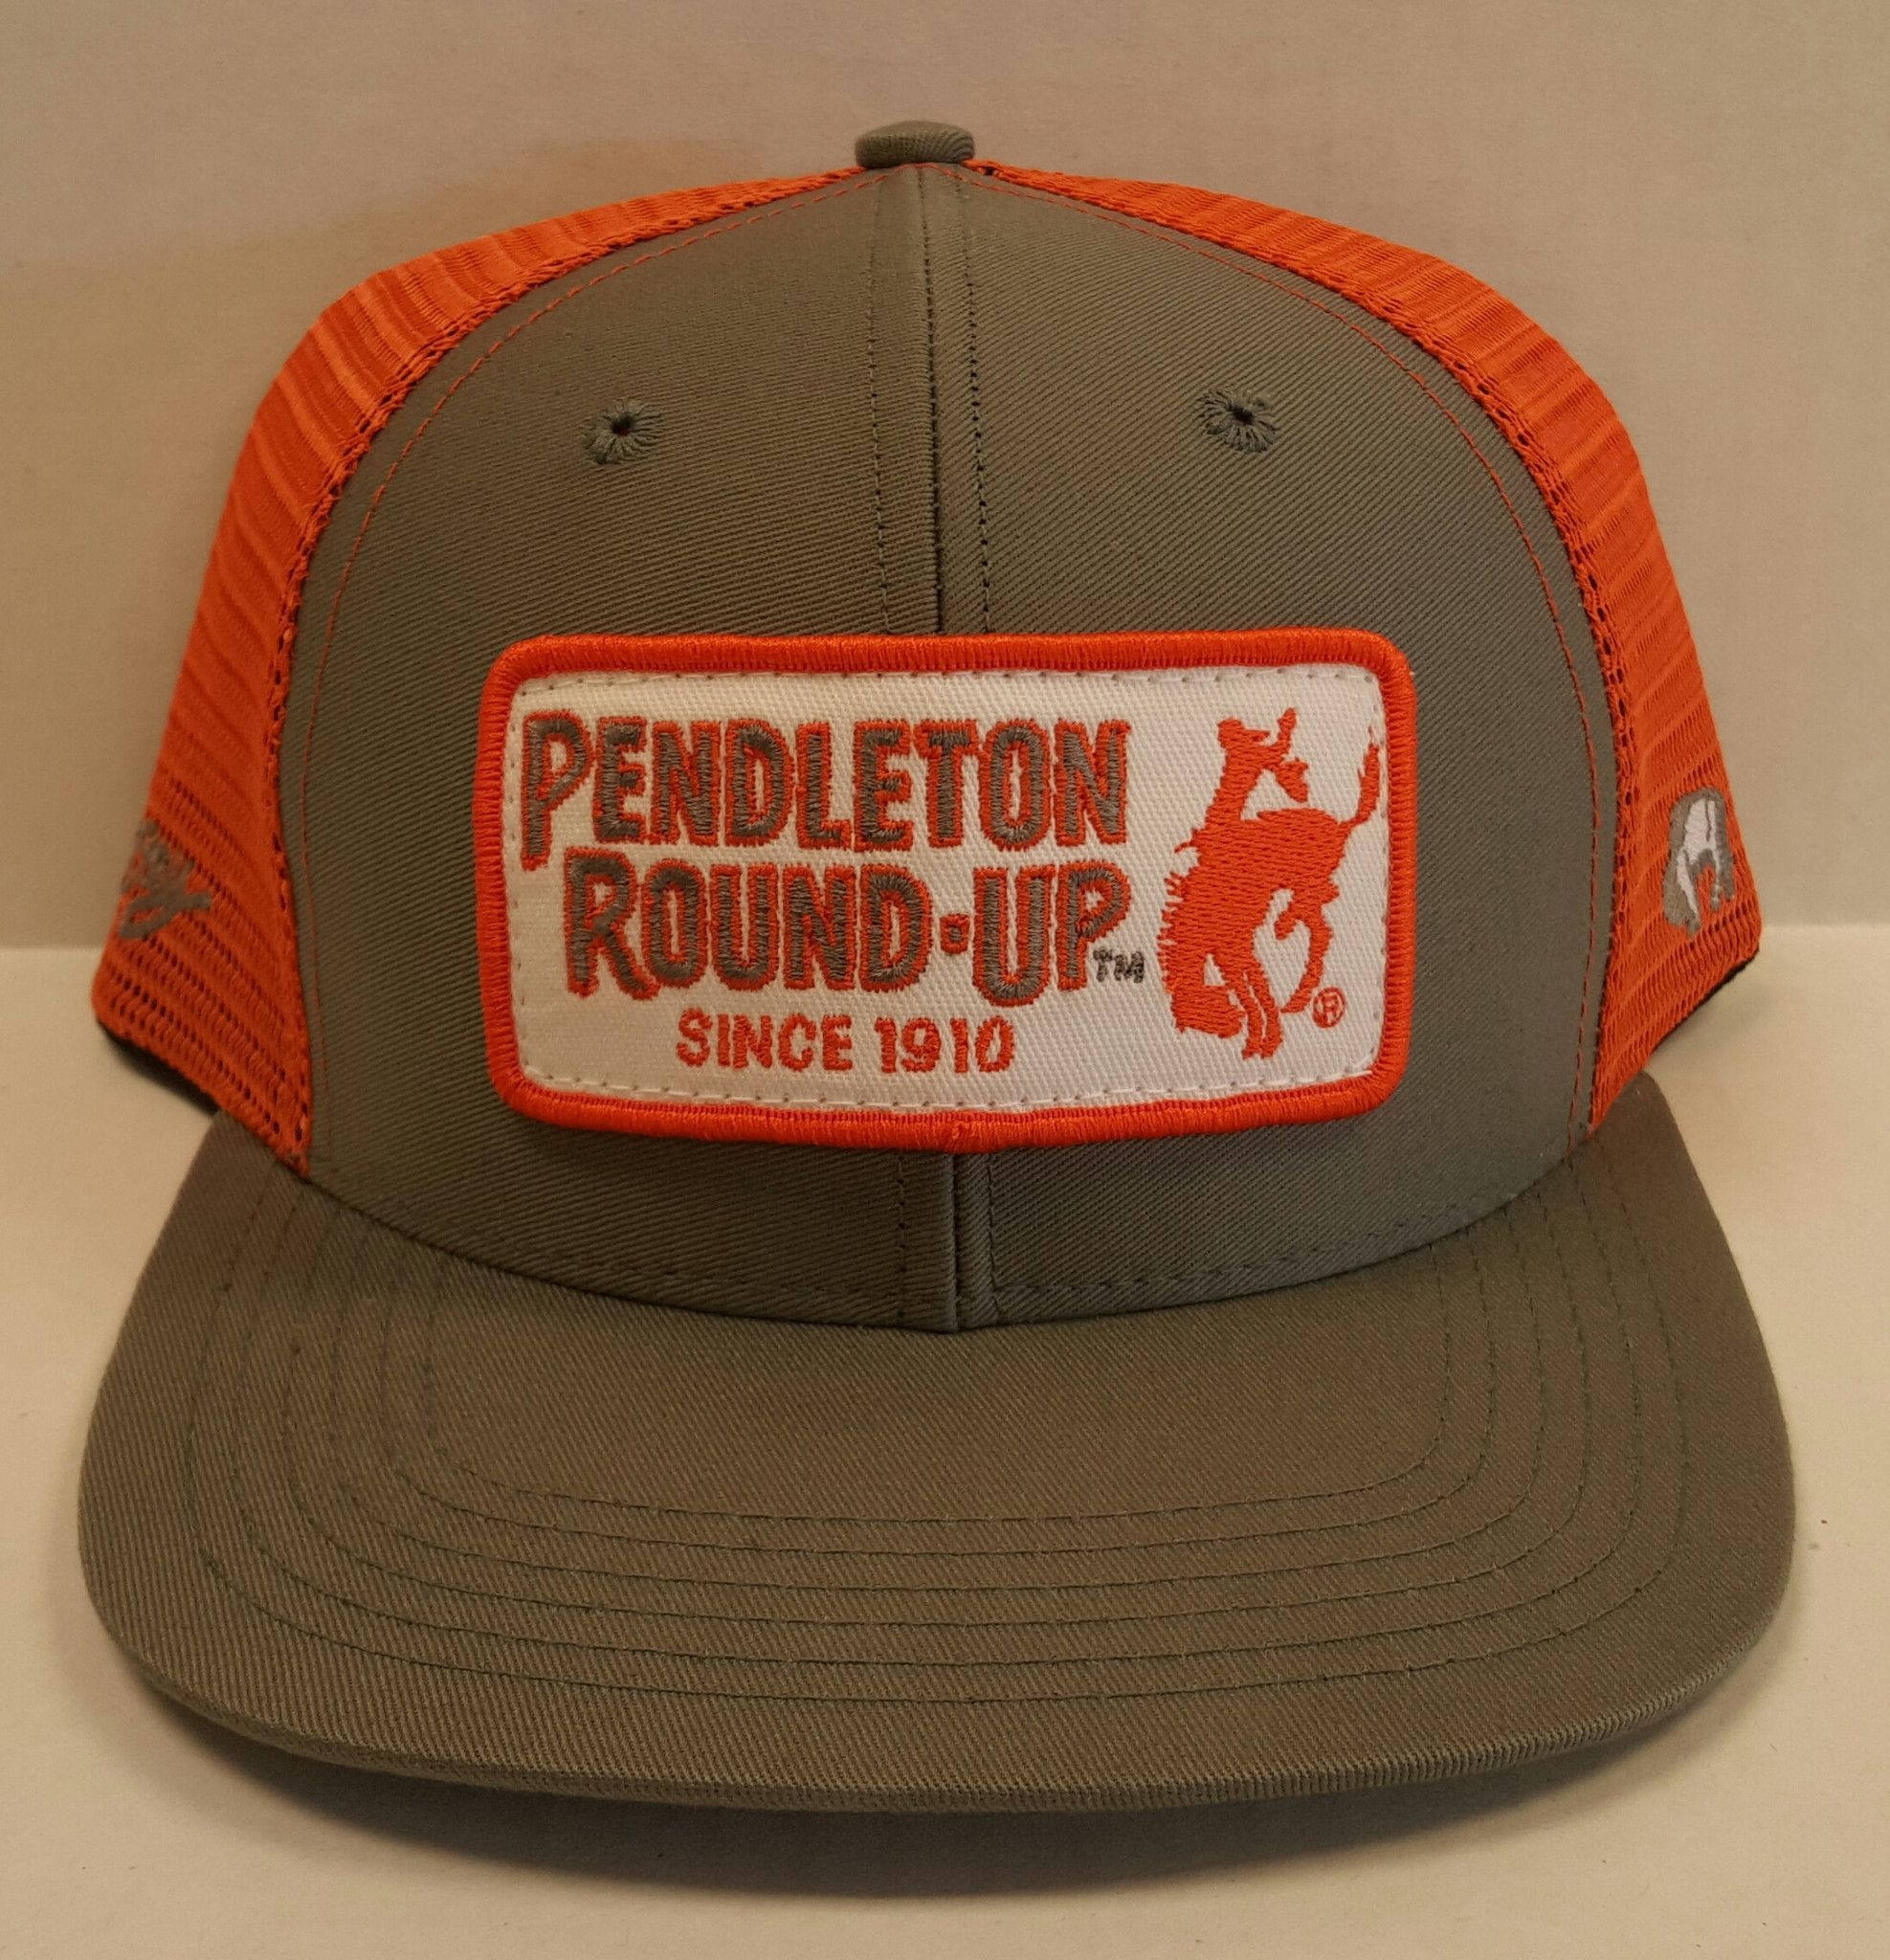 check out 400d3 28f6b ... czech orange and grey snapback hooey hat with patch on front  embroidered with pendleton round up